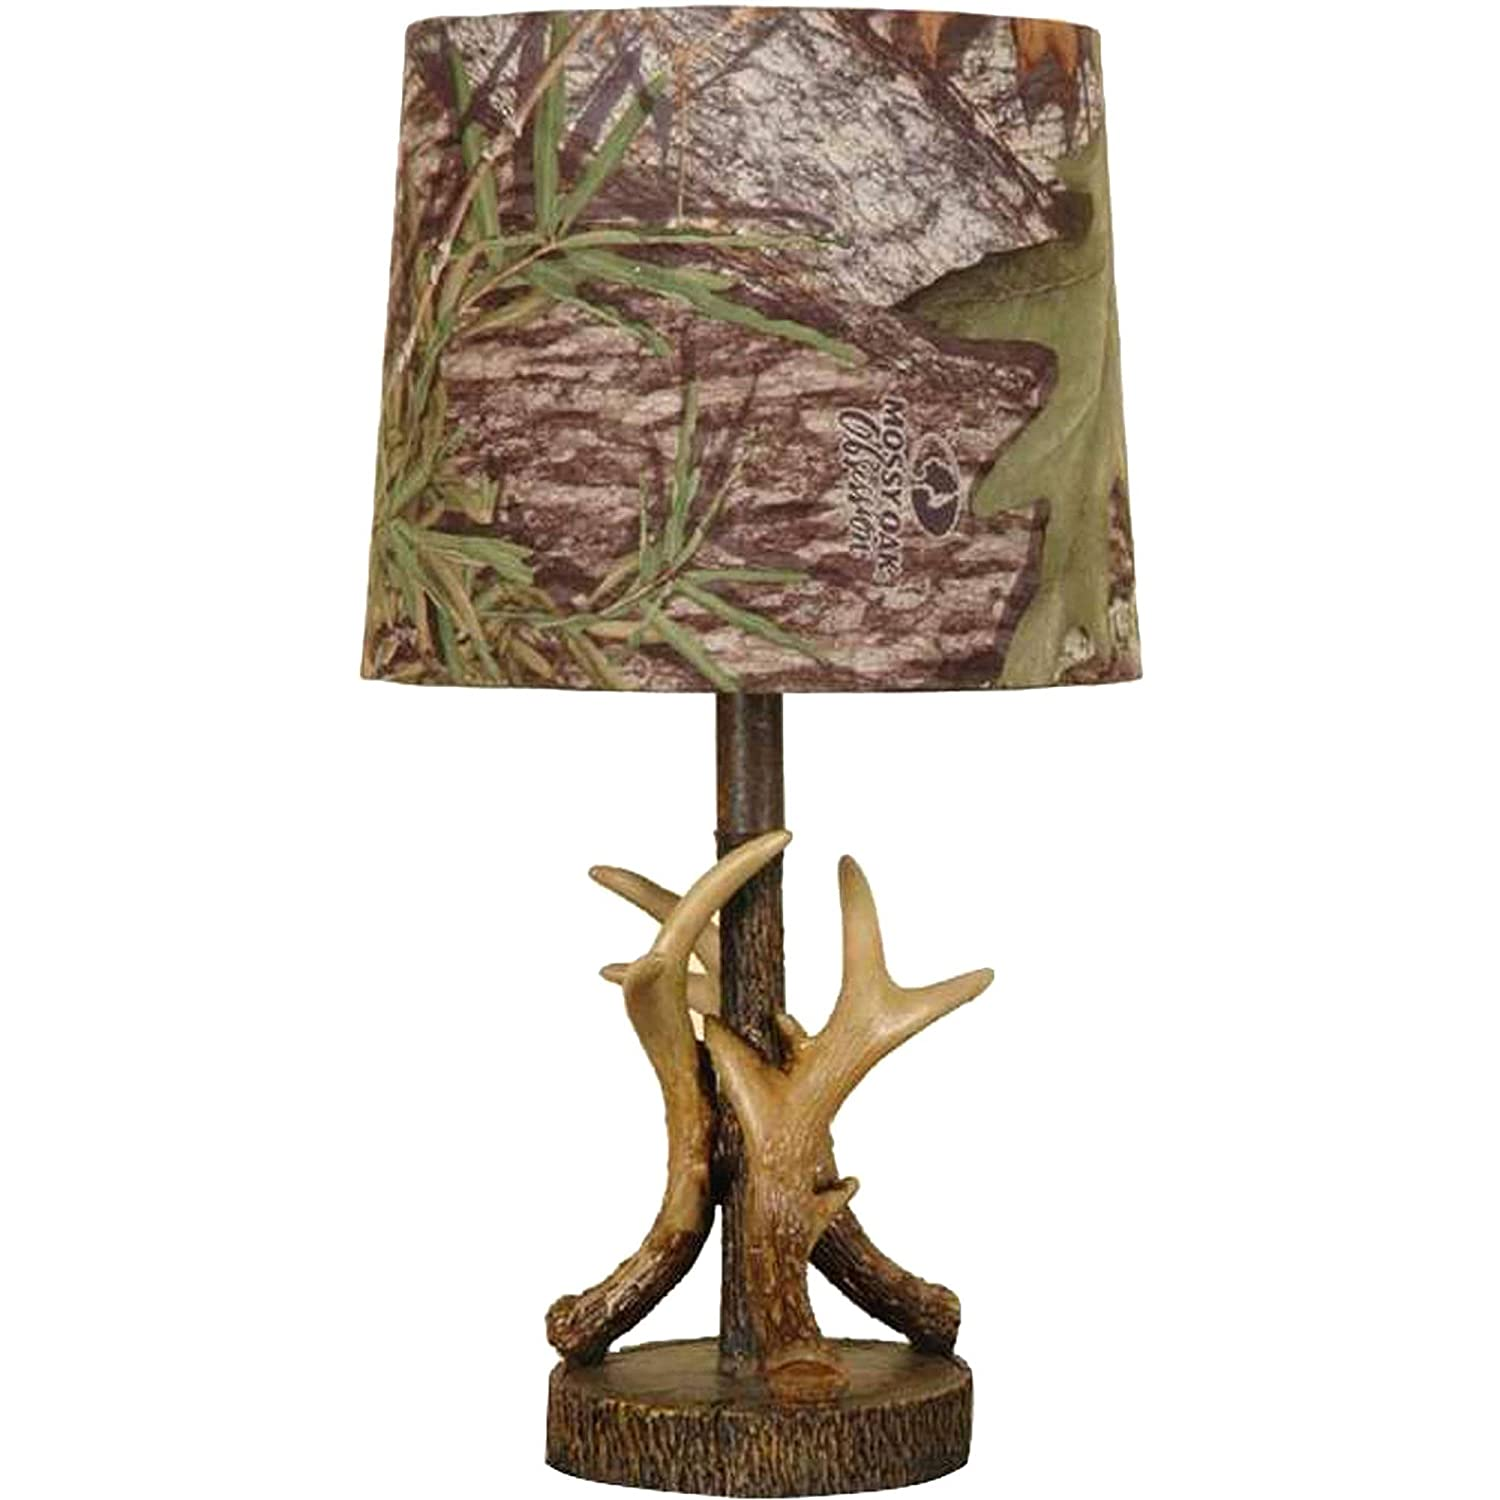 Mossy Oak Deer Antler Accent Lamp Dark Woodtone Table Lamps - Accent lamps for bedroom